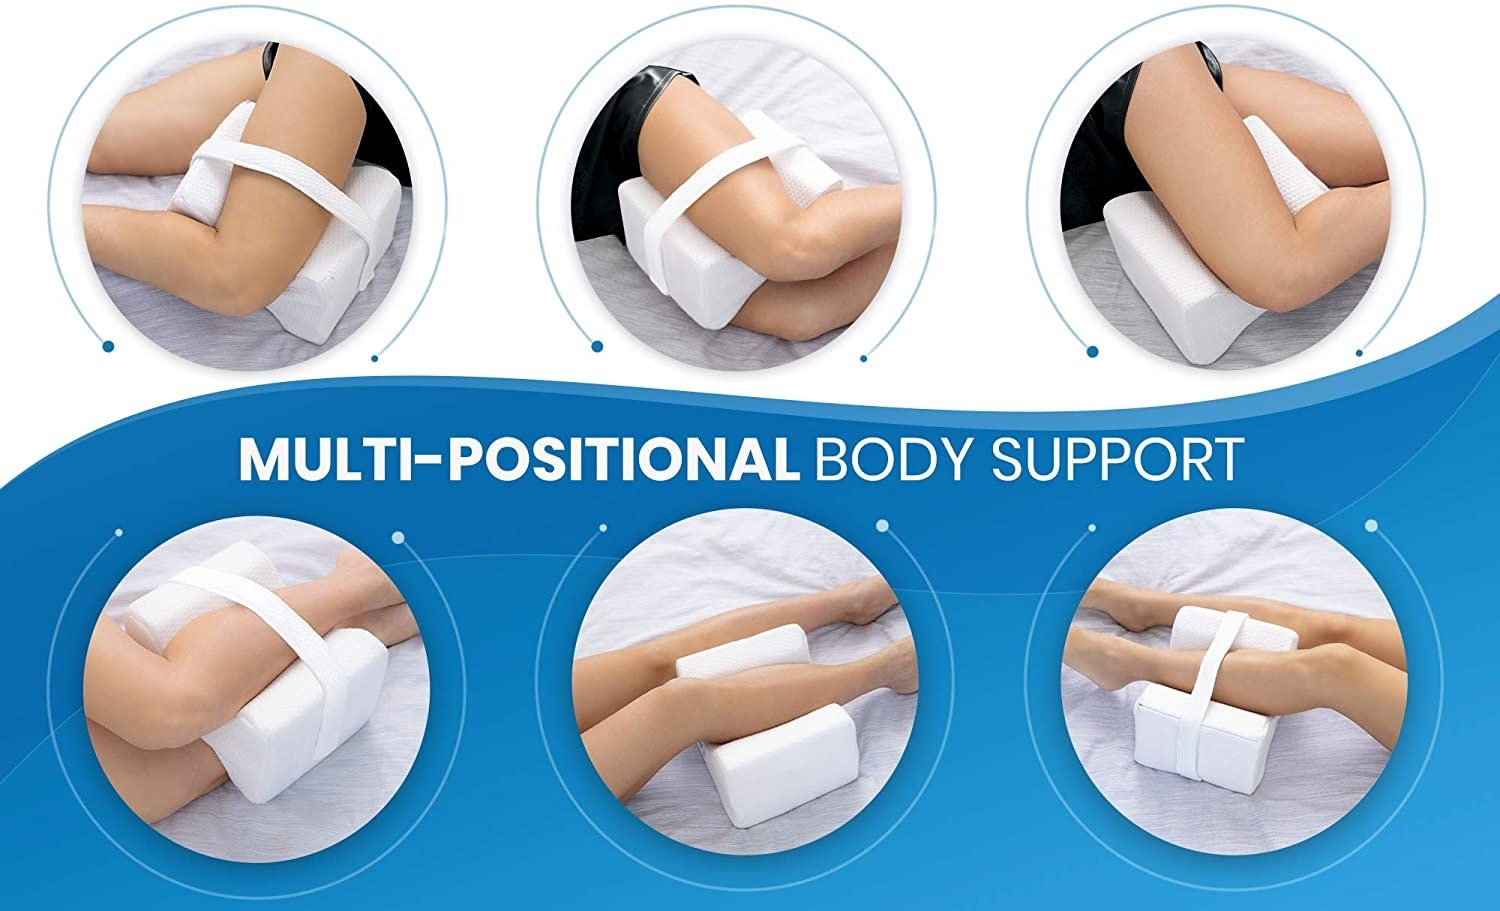 The pillow being used six different ways on model's legs